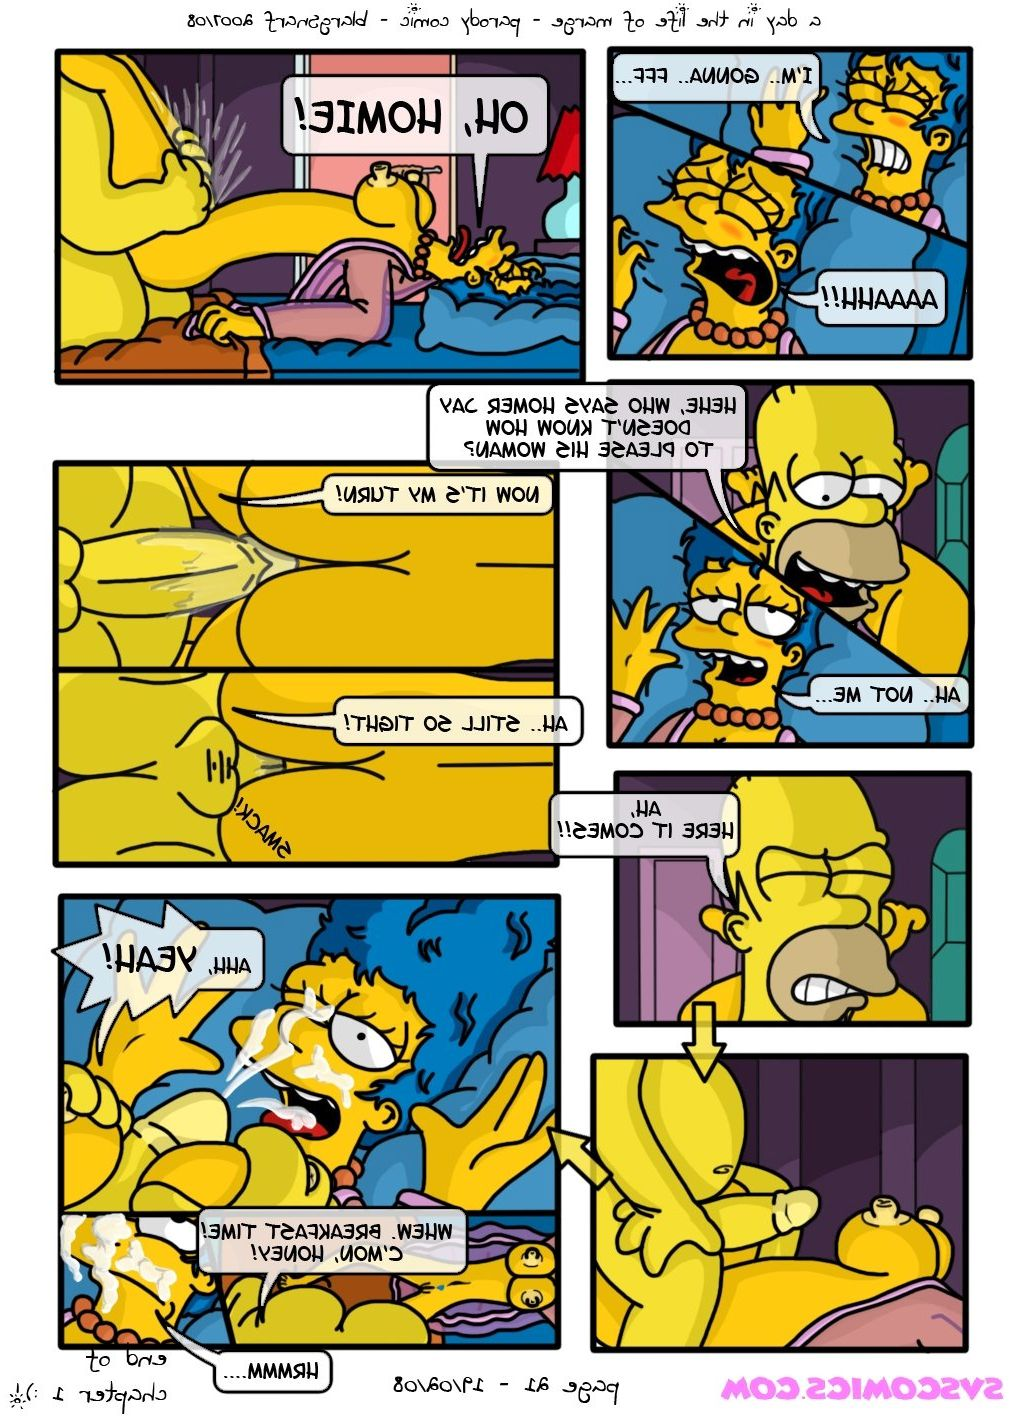 day-life-marge-simpsons image_9576.jpg